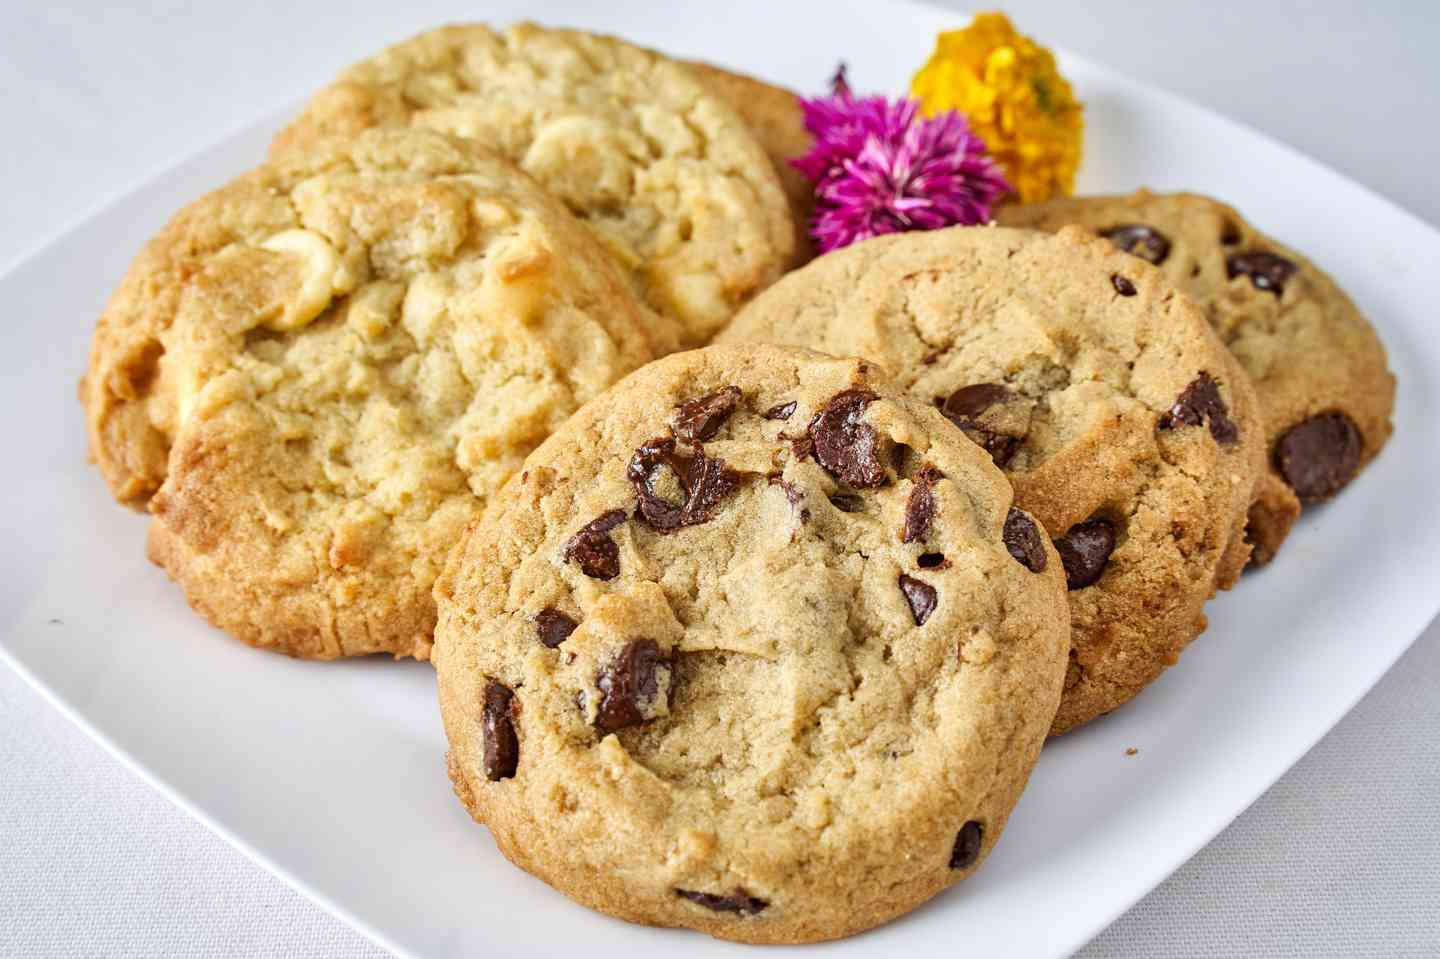 Fresh Baked Chocolate Chip & Macadamia Nut Cookies